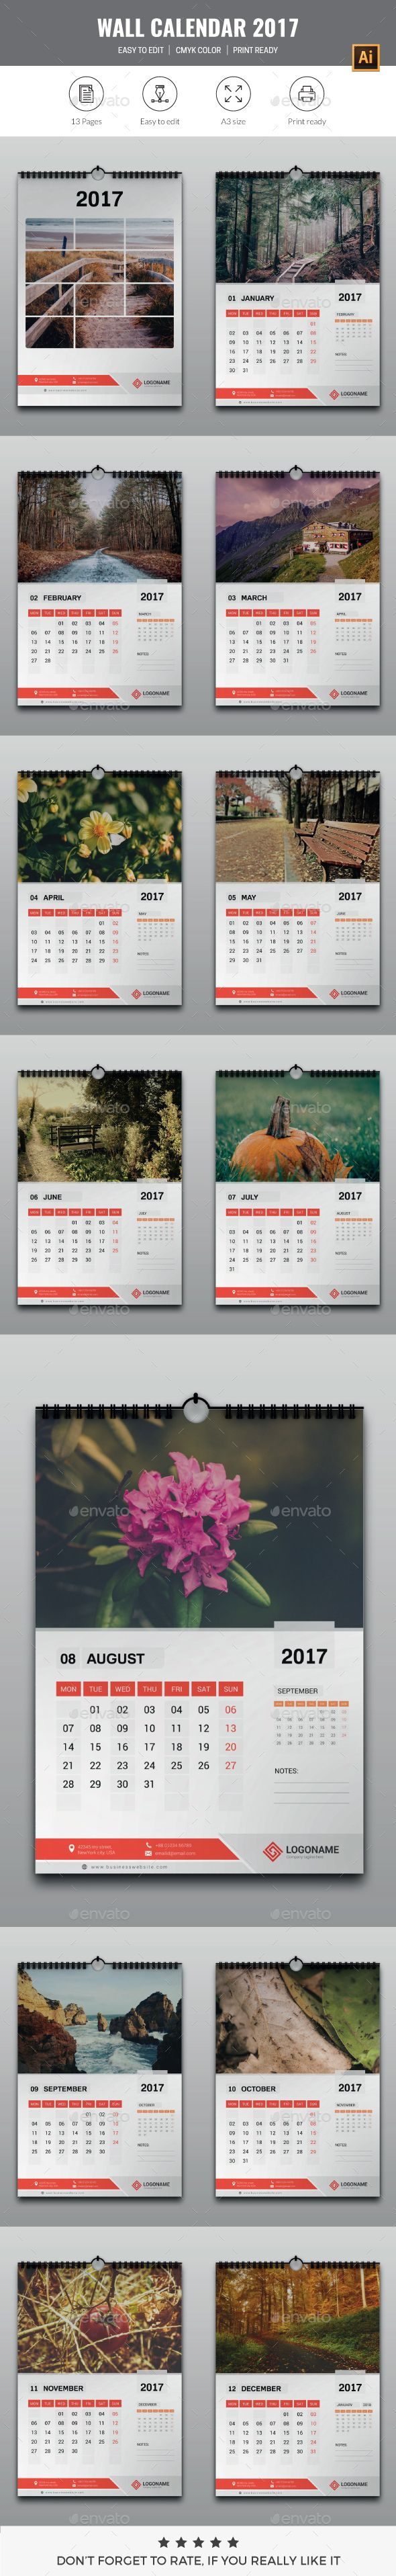 Wall Calendar 2017 Template Vector EPS, AI Illustrator                                                                                                                                                                                 More